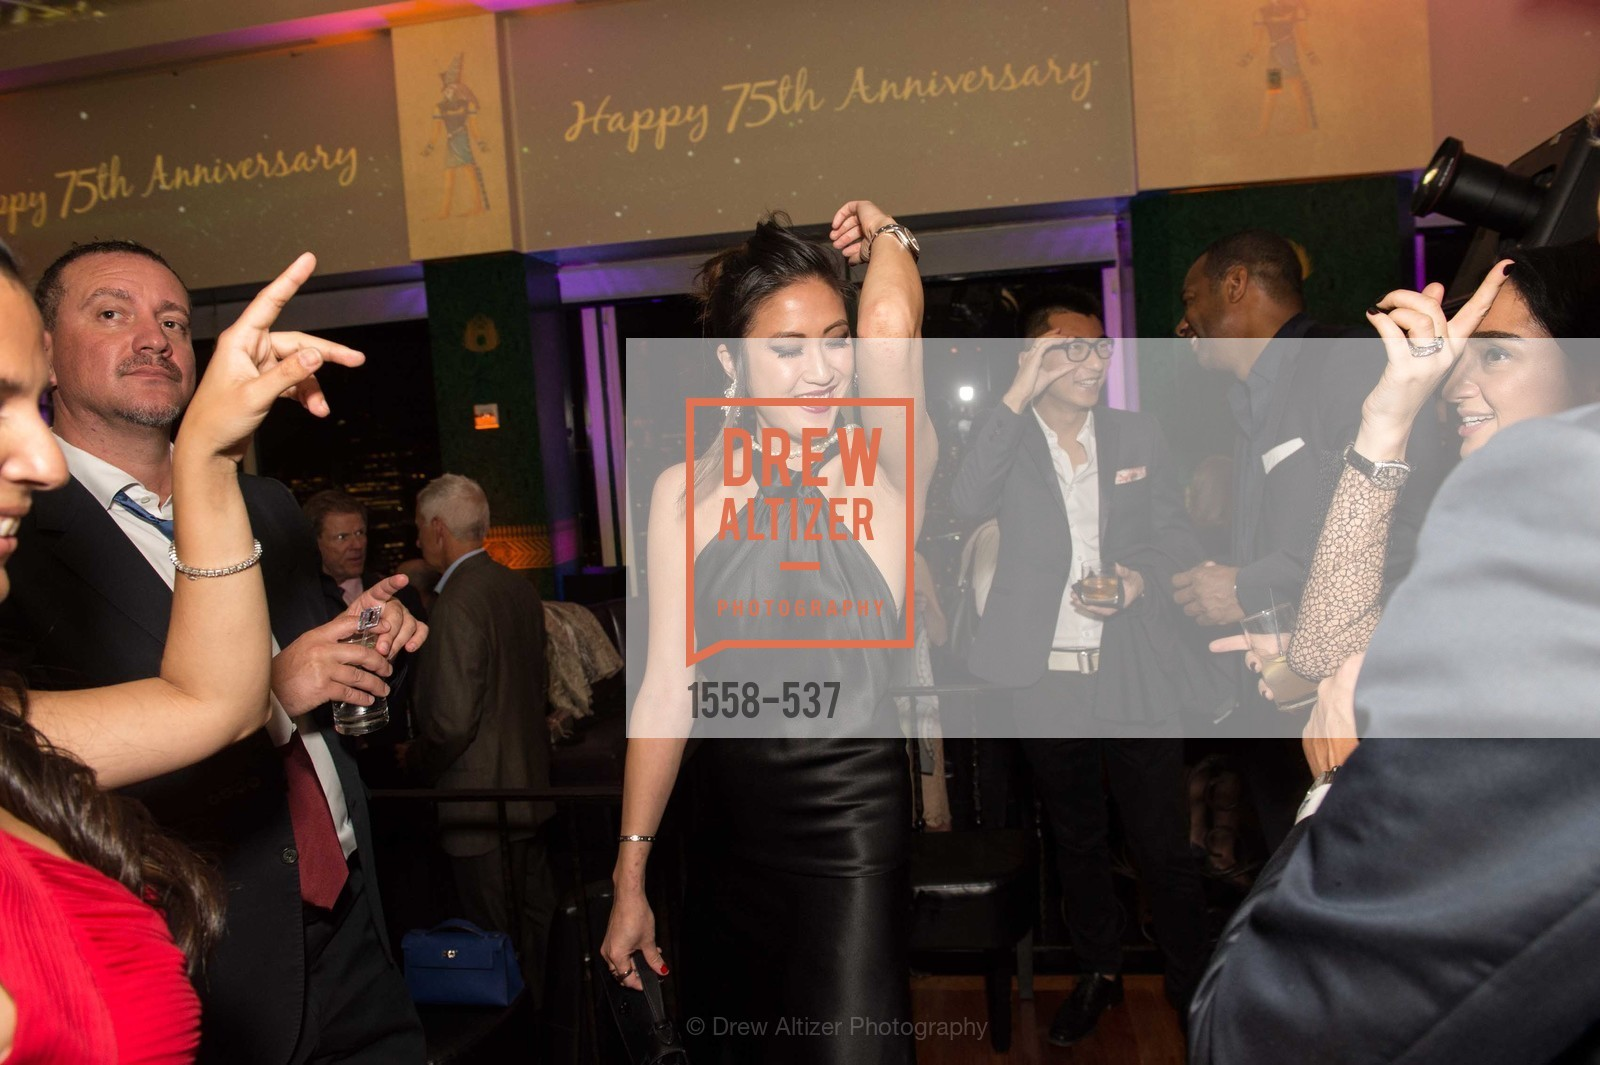 Jessica Hon, TOP OF THE MARK'S 75TH Anniversary Party, US, November 6th, 2014,Drew Altizer, Drew Altizer Photography, full-service agency, private events, San Francisco photographer, photographer california